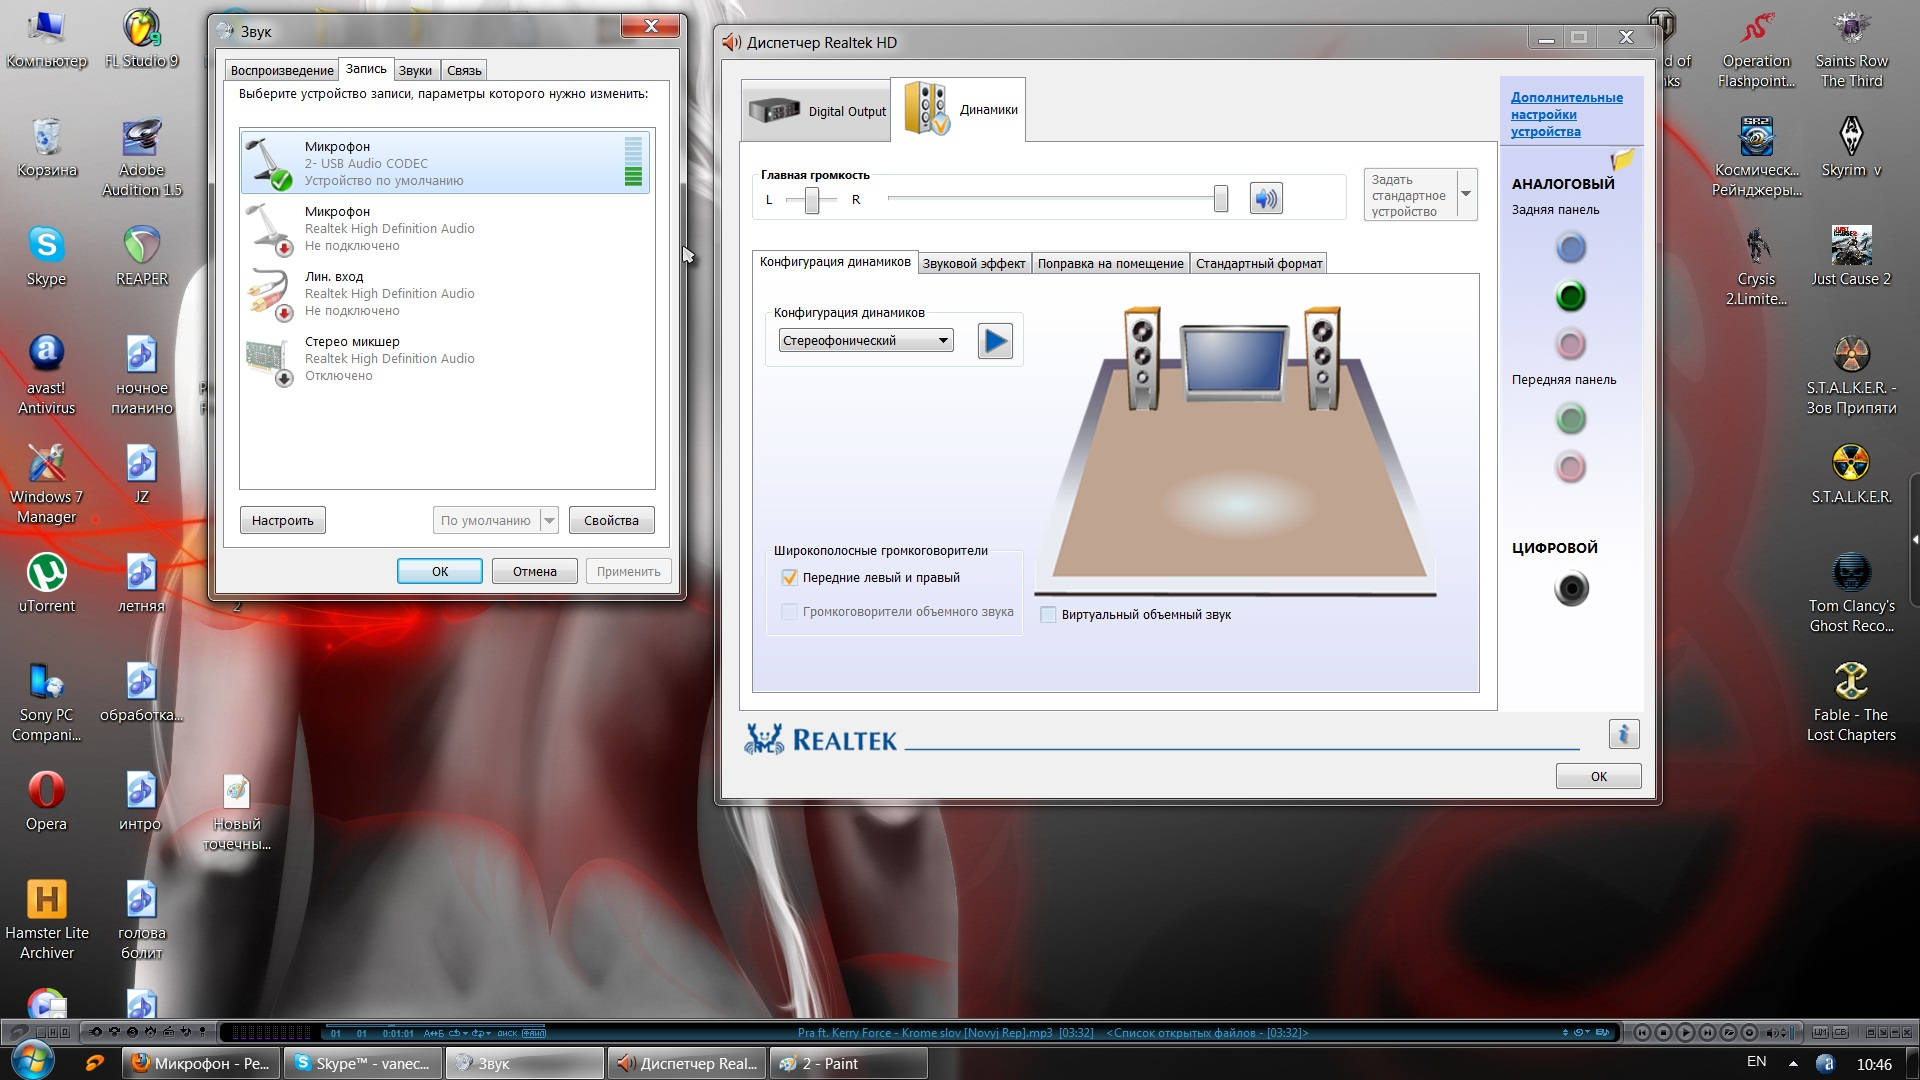 realtek hd audio driver 5.10.0.5121